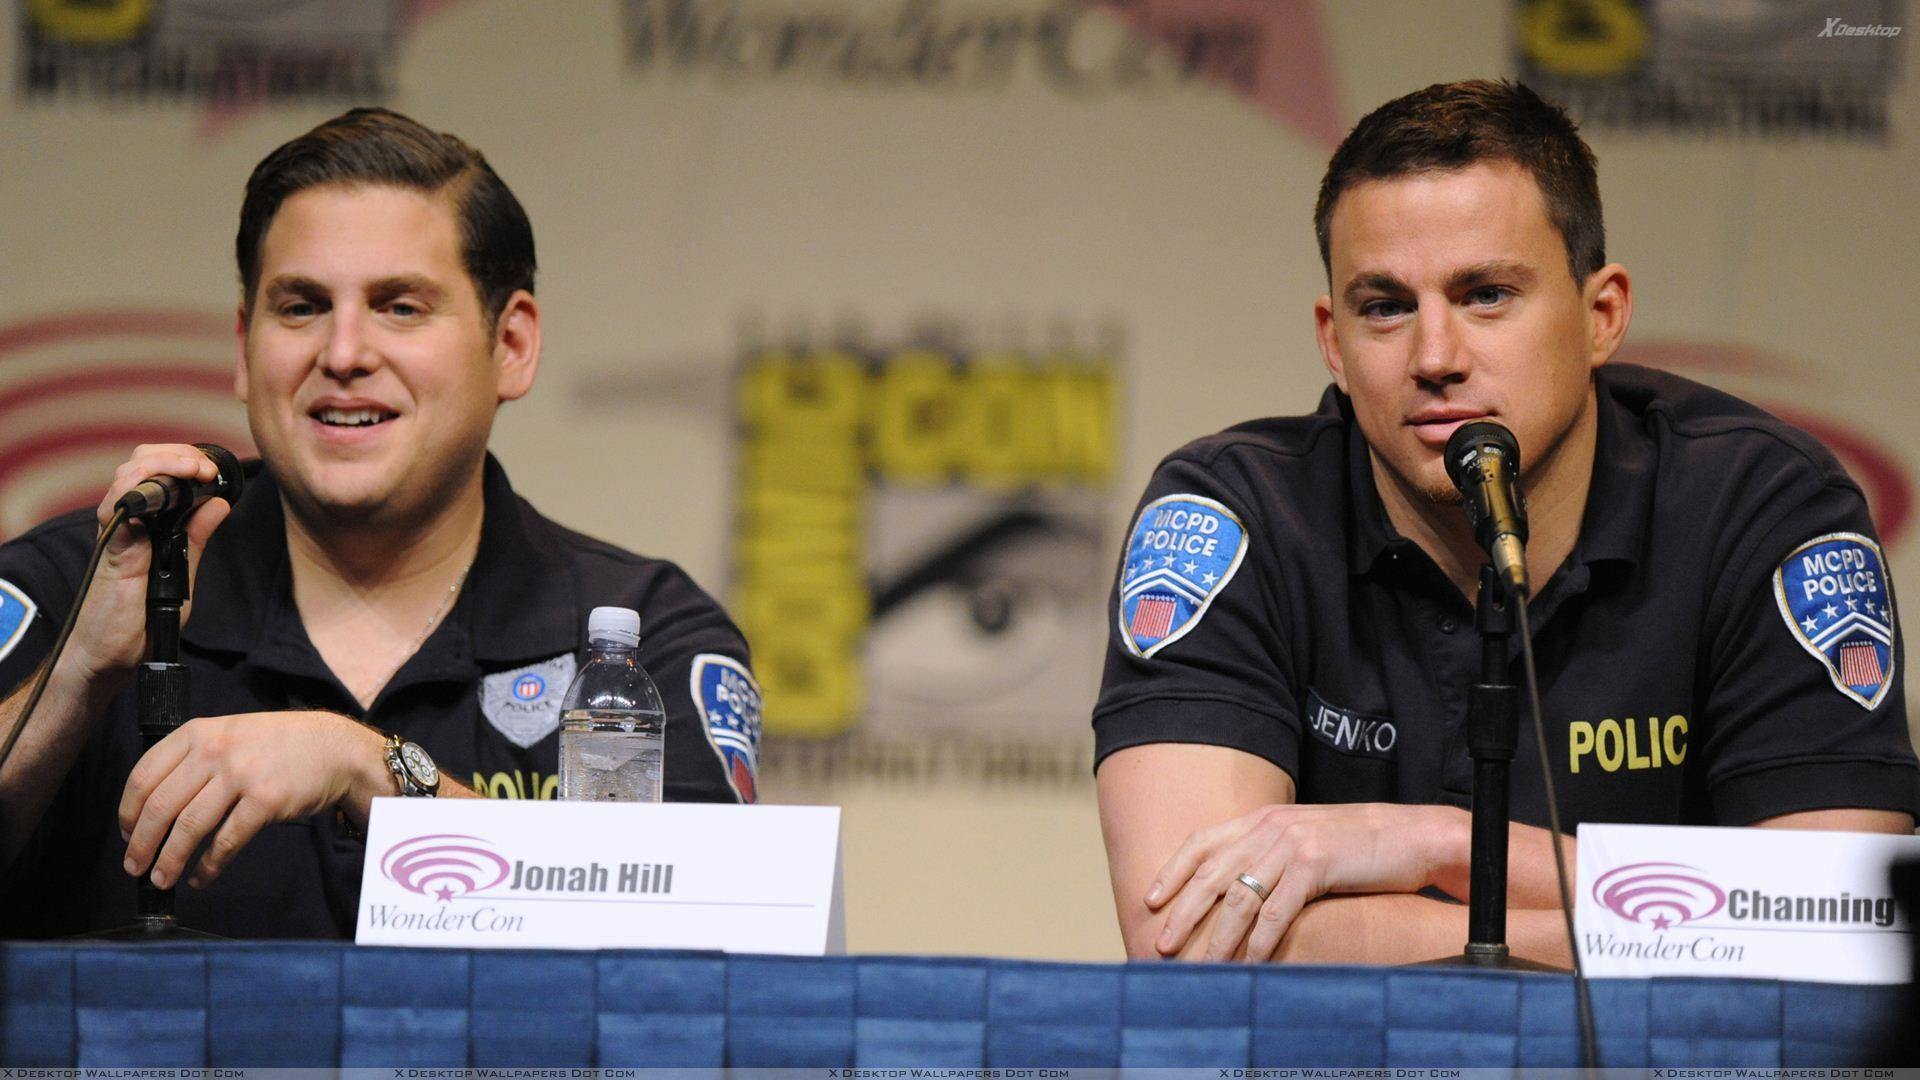 21 Jump Street Wallpapers, Photos & Images in HD